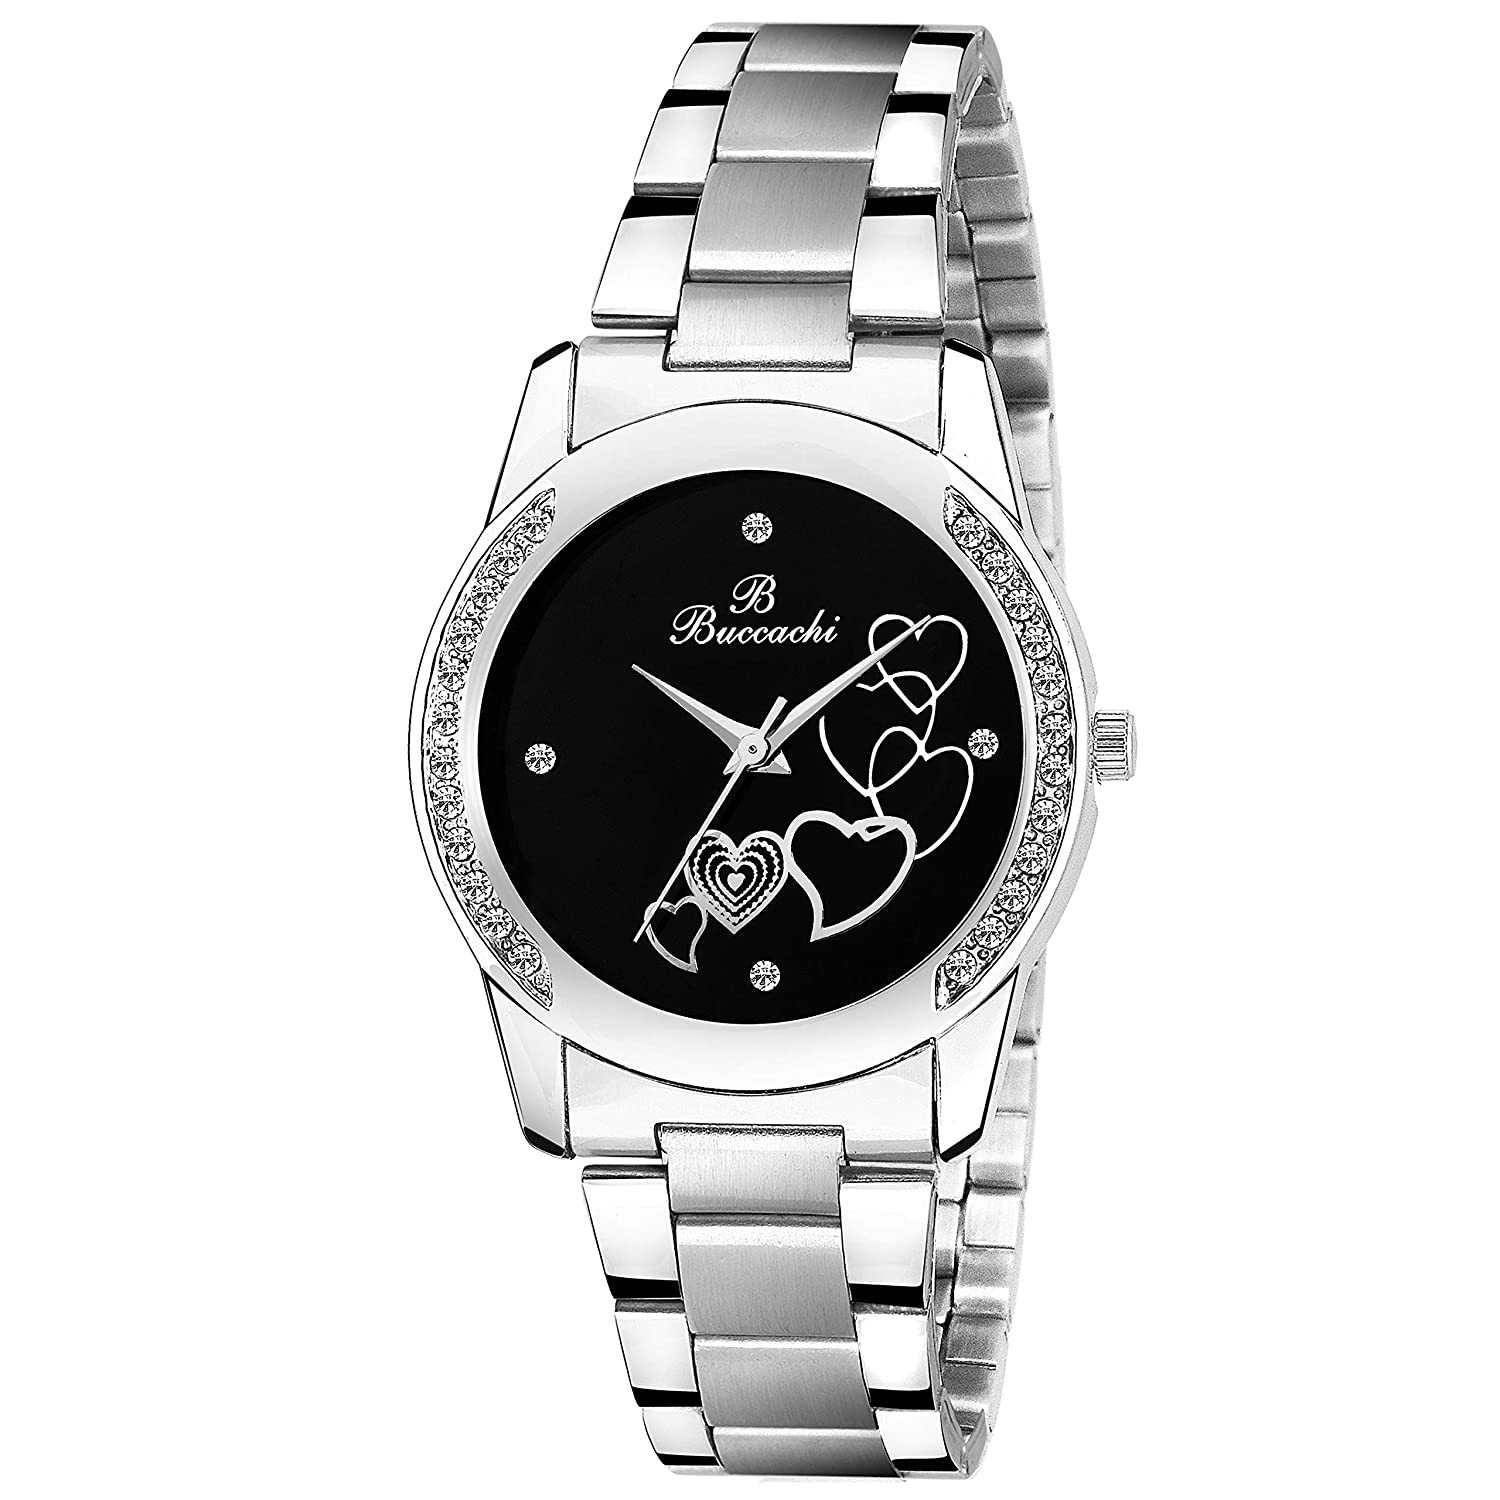 Buccachi Analogue Black Round Dial Watch for Women's (B-L1032-BK-CH)